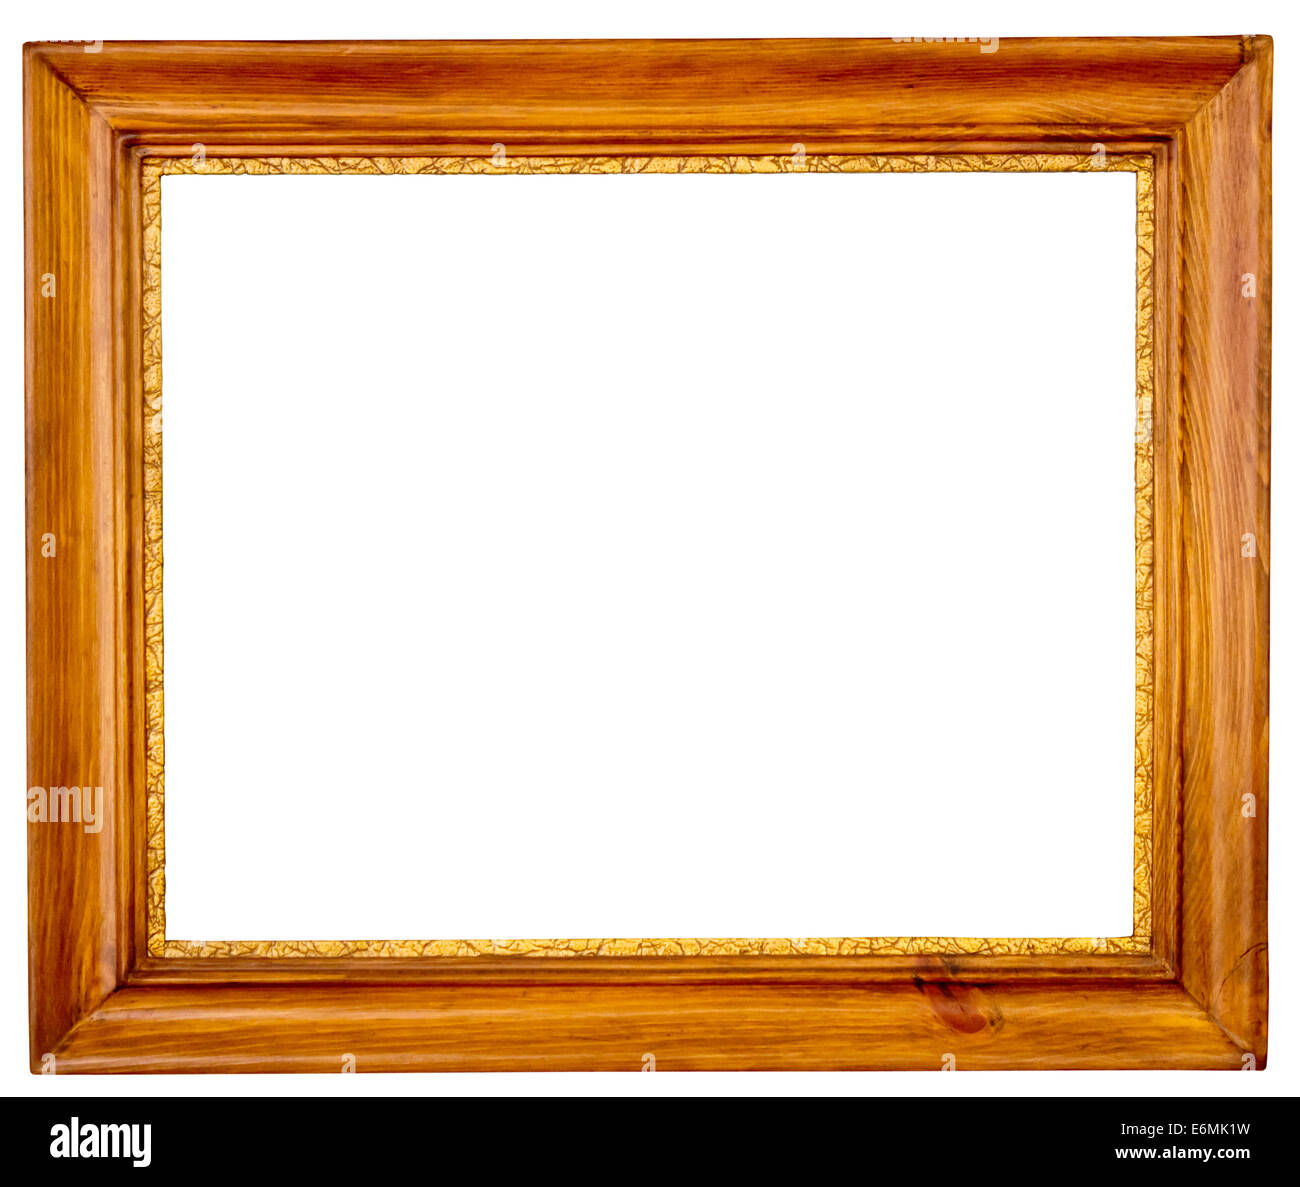 wood frame isolated on a white background - Stock Image